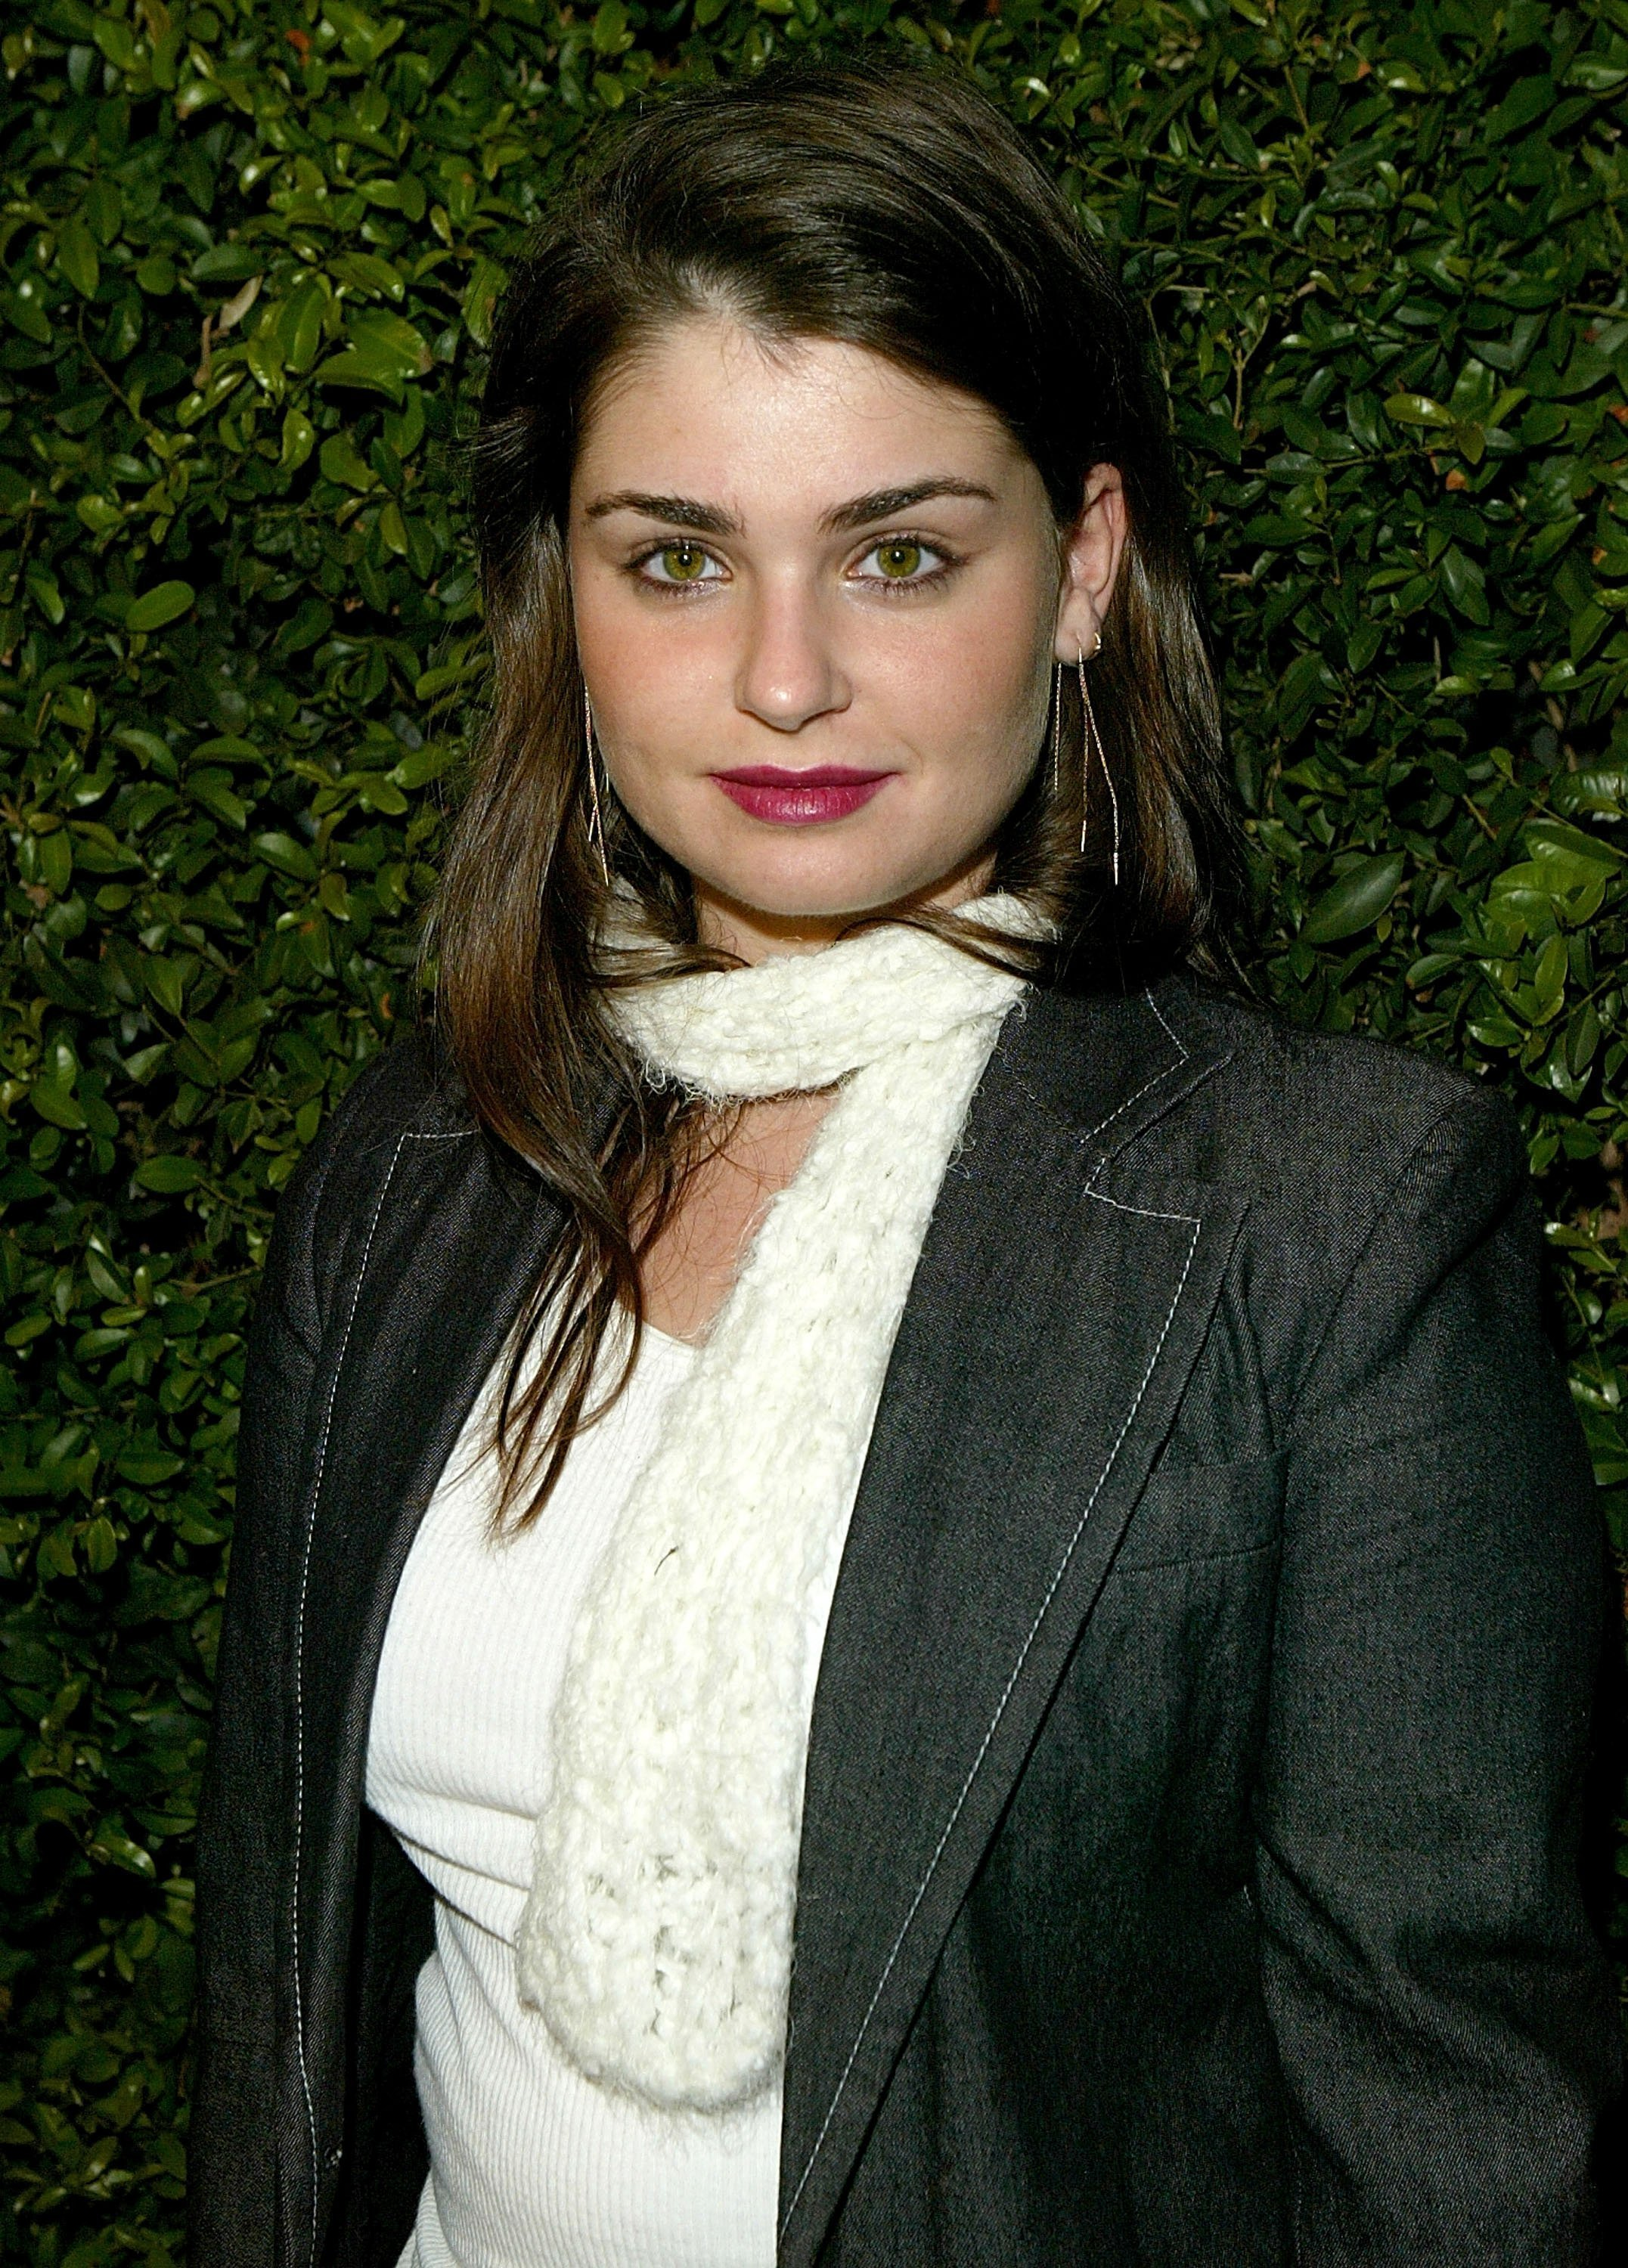 Aimee Osbourne lors de l'ouverture du magasin Stella McCartney en 2003. | Source : Getty Images